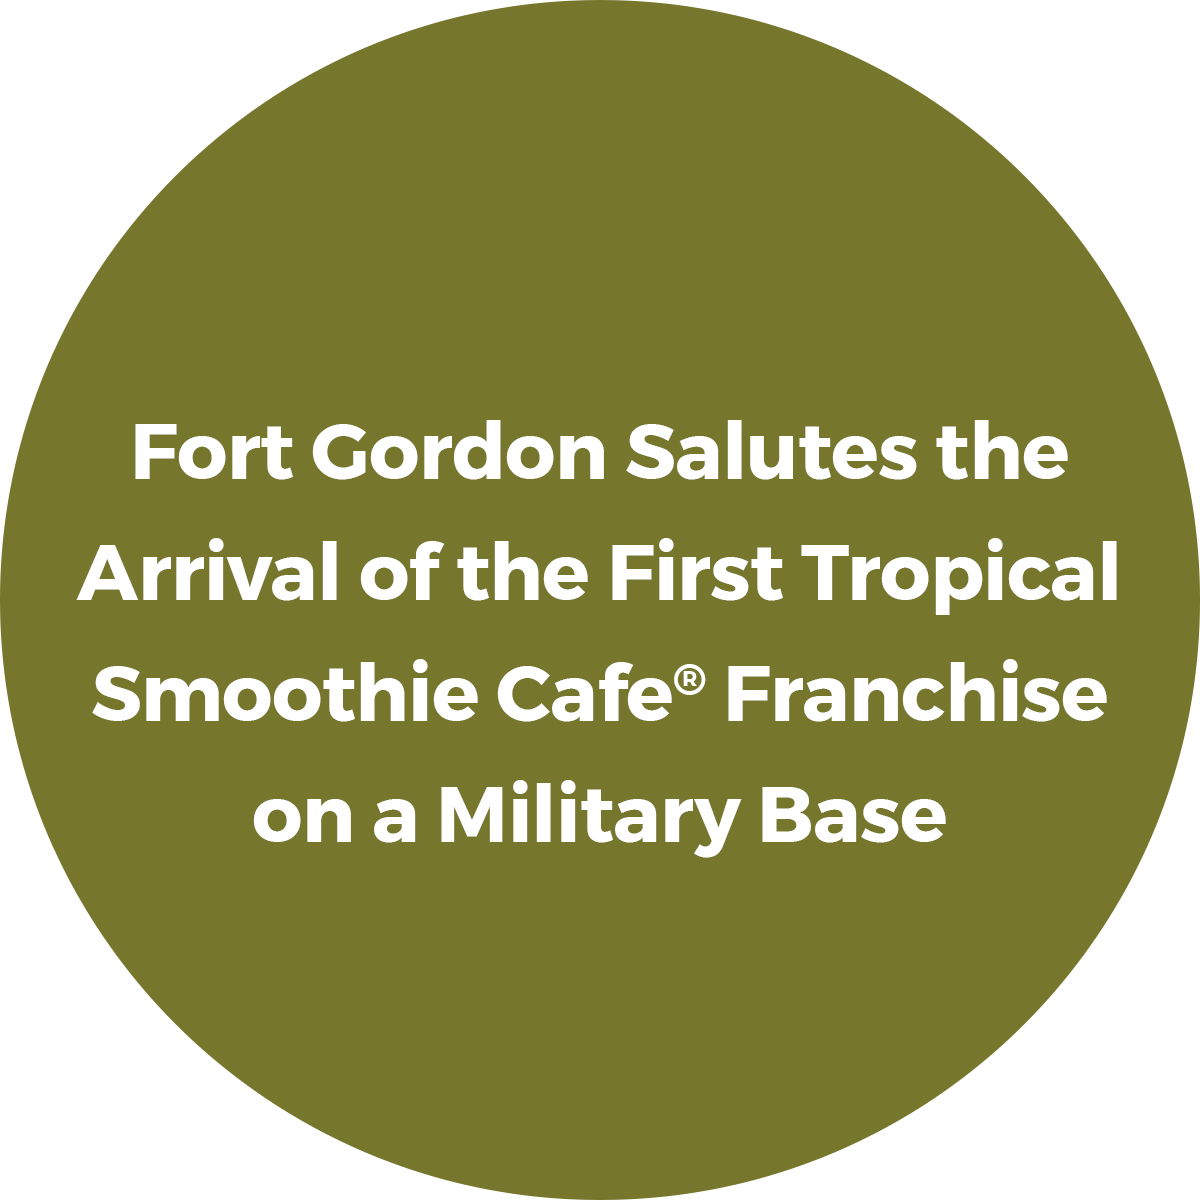 Fort Gordon Salutes the Arrival of the First Tropical Smoothie Cafe Franchise on a Military Base